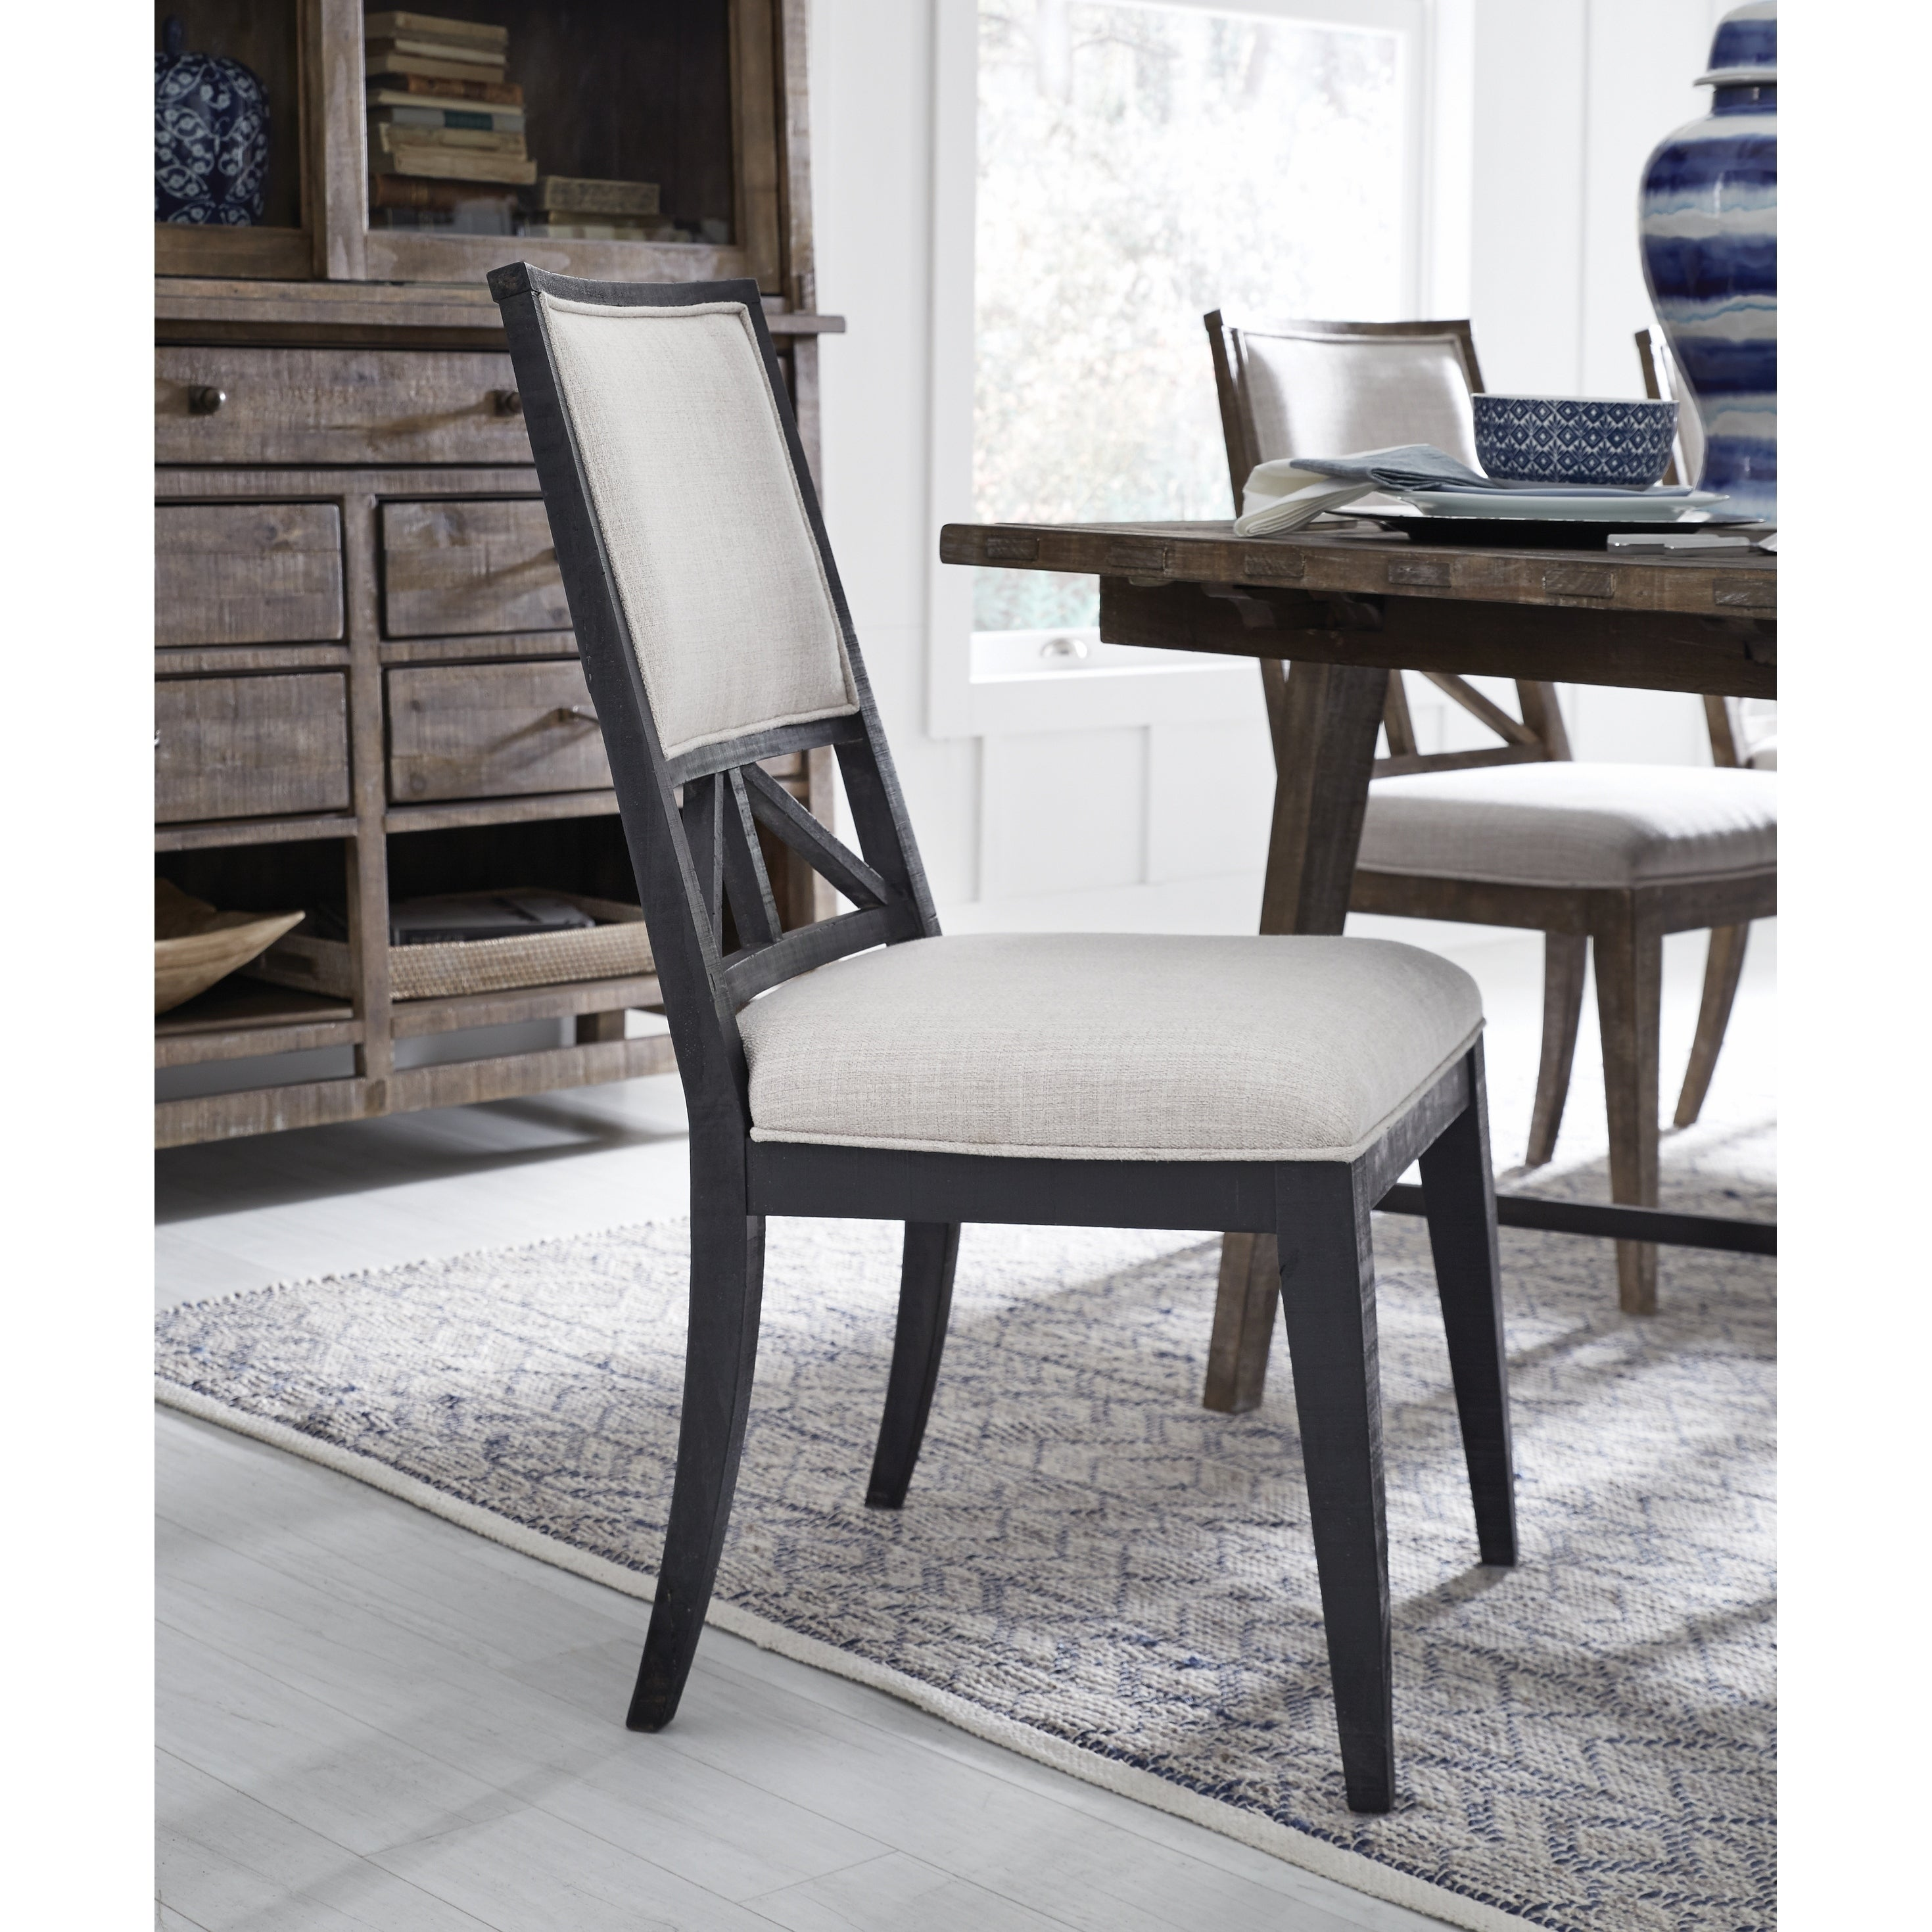 Lake Haven Rustic Washed Denim Upholstered Side Chair